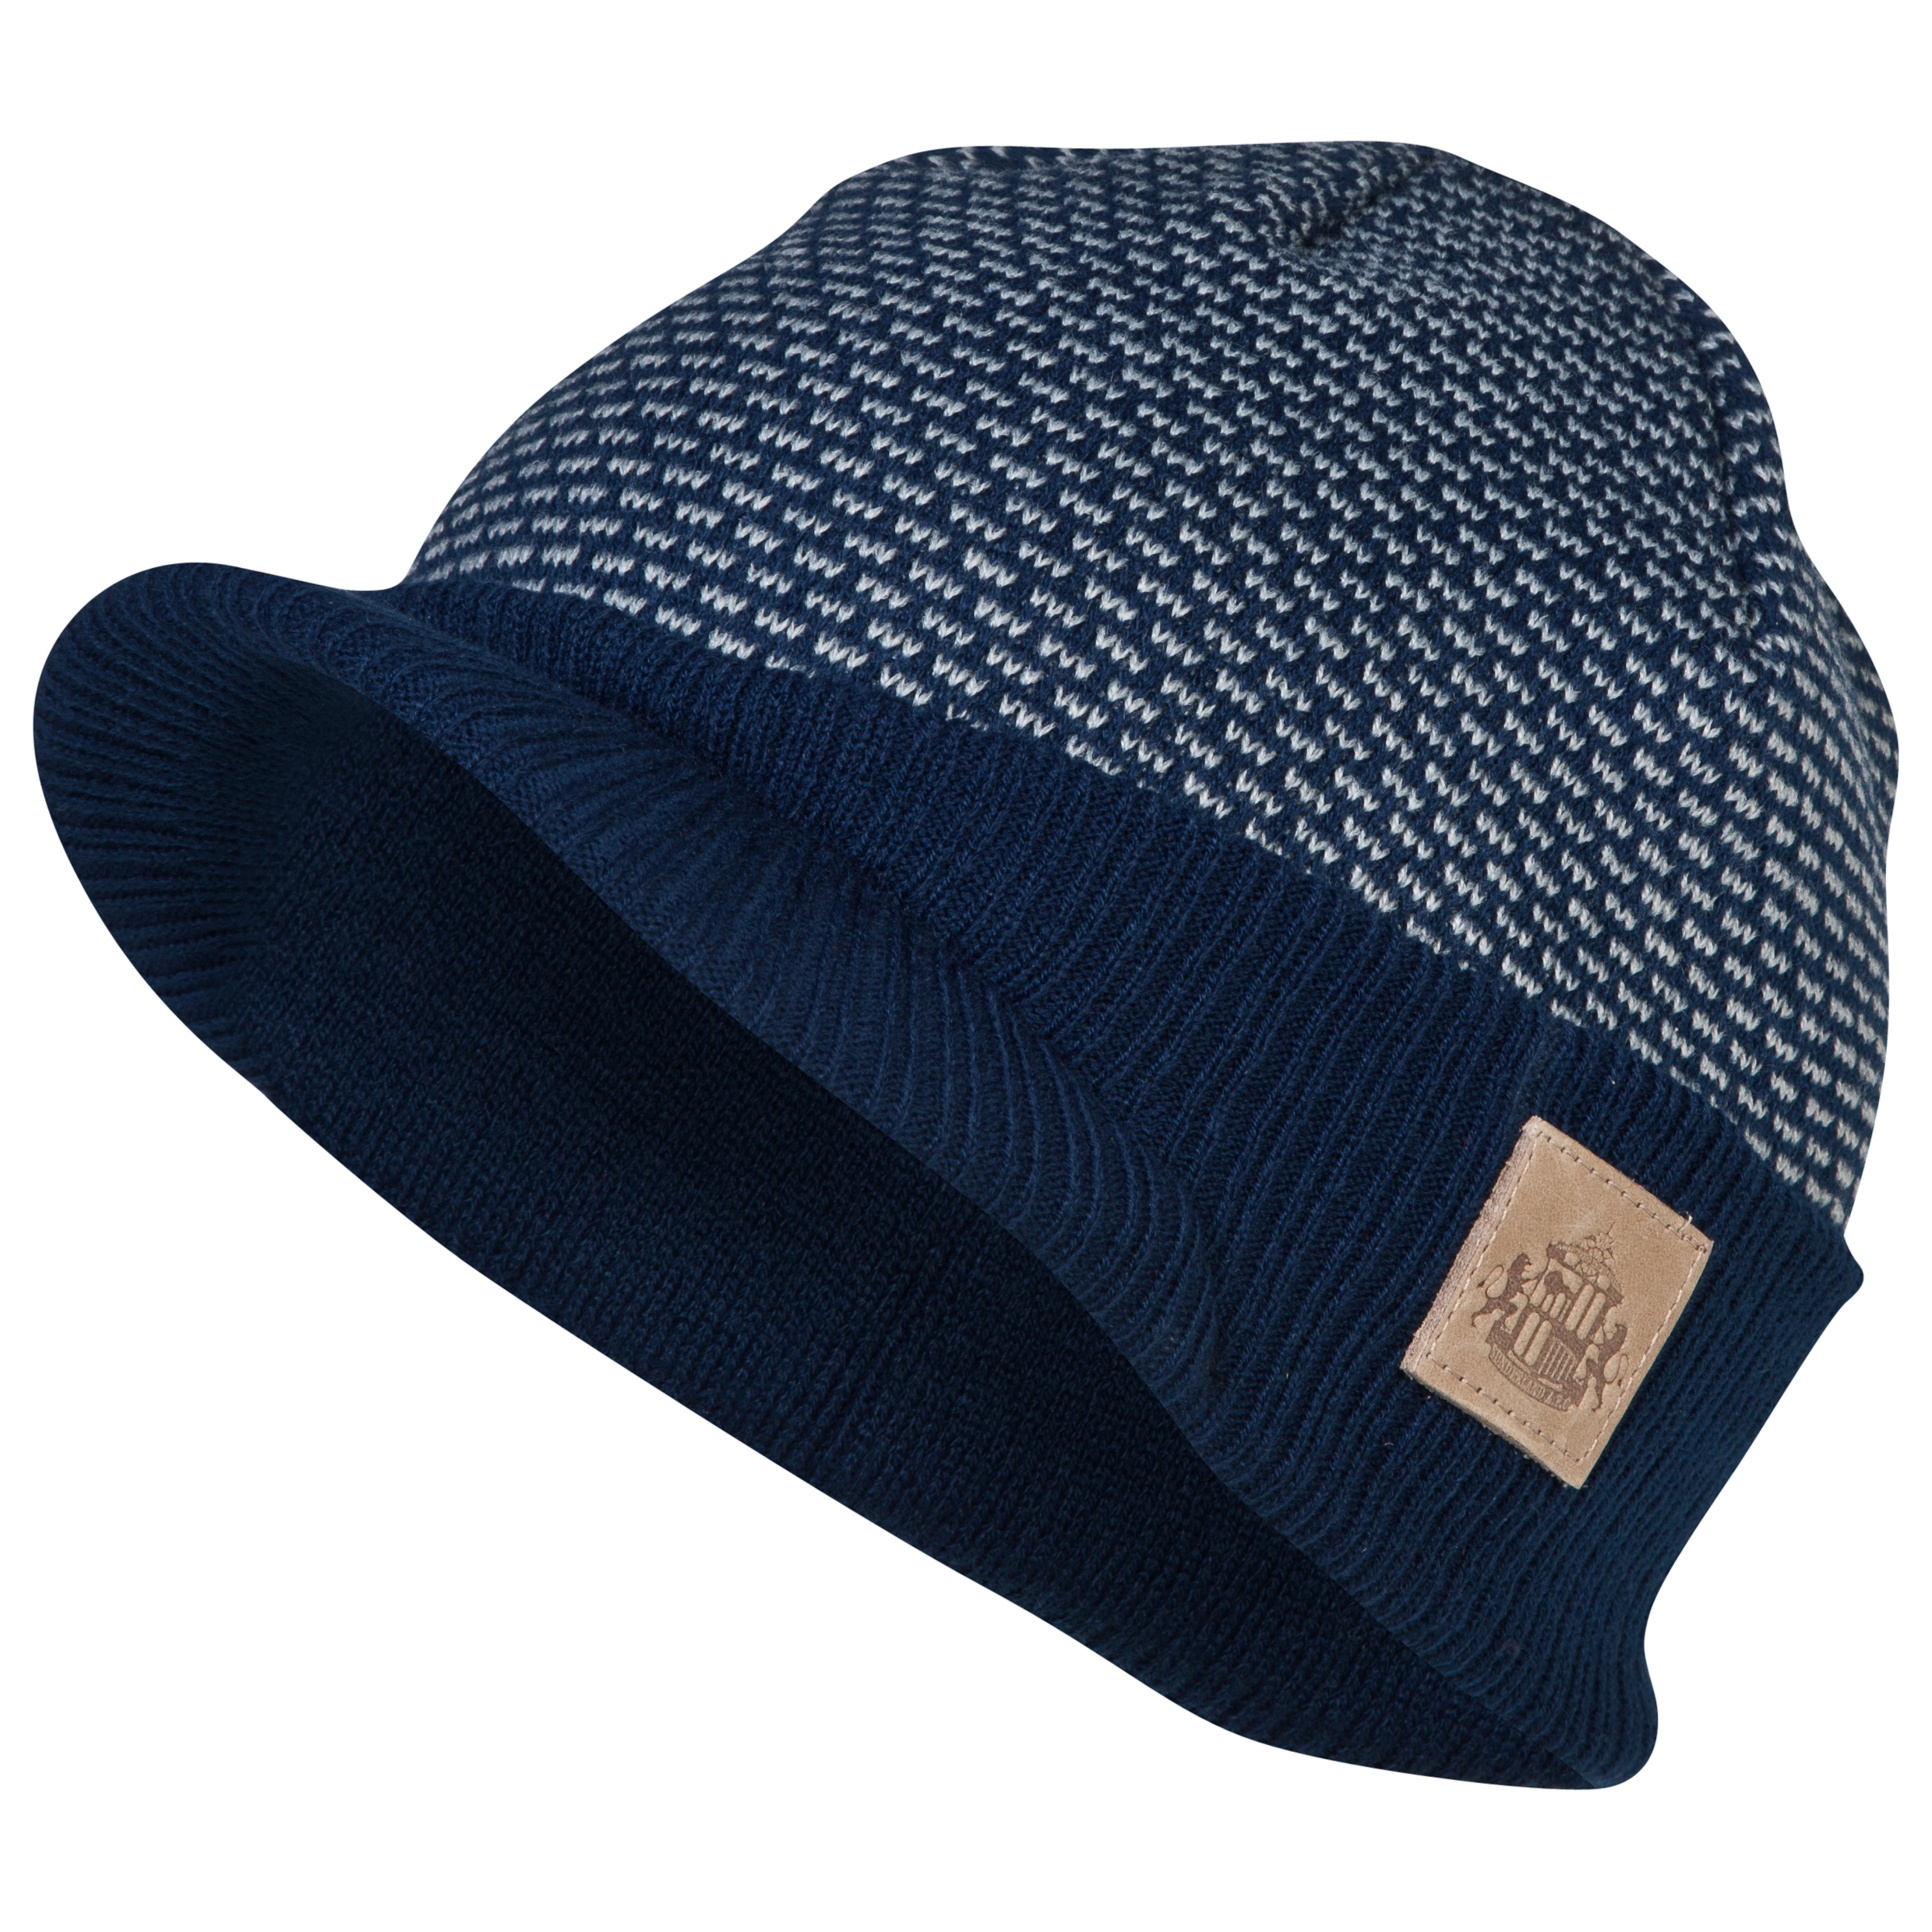 Sunderland Perforate Hat Navy